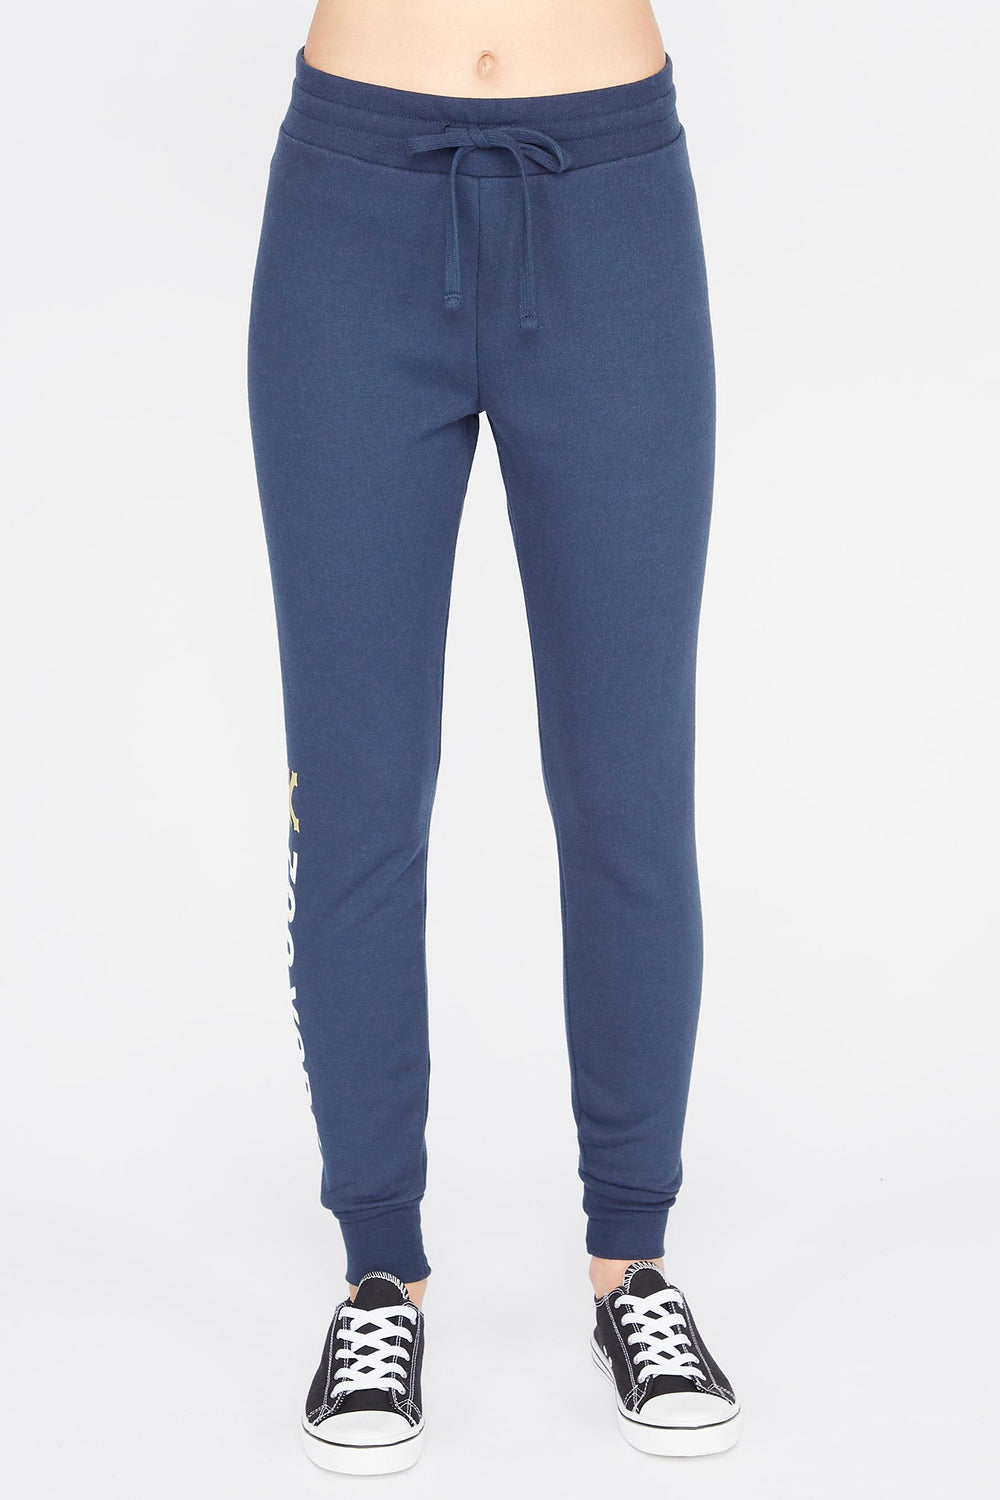 Zoo York Womens Fleece Joggers Navy